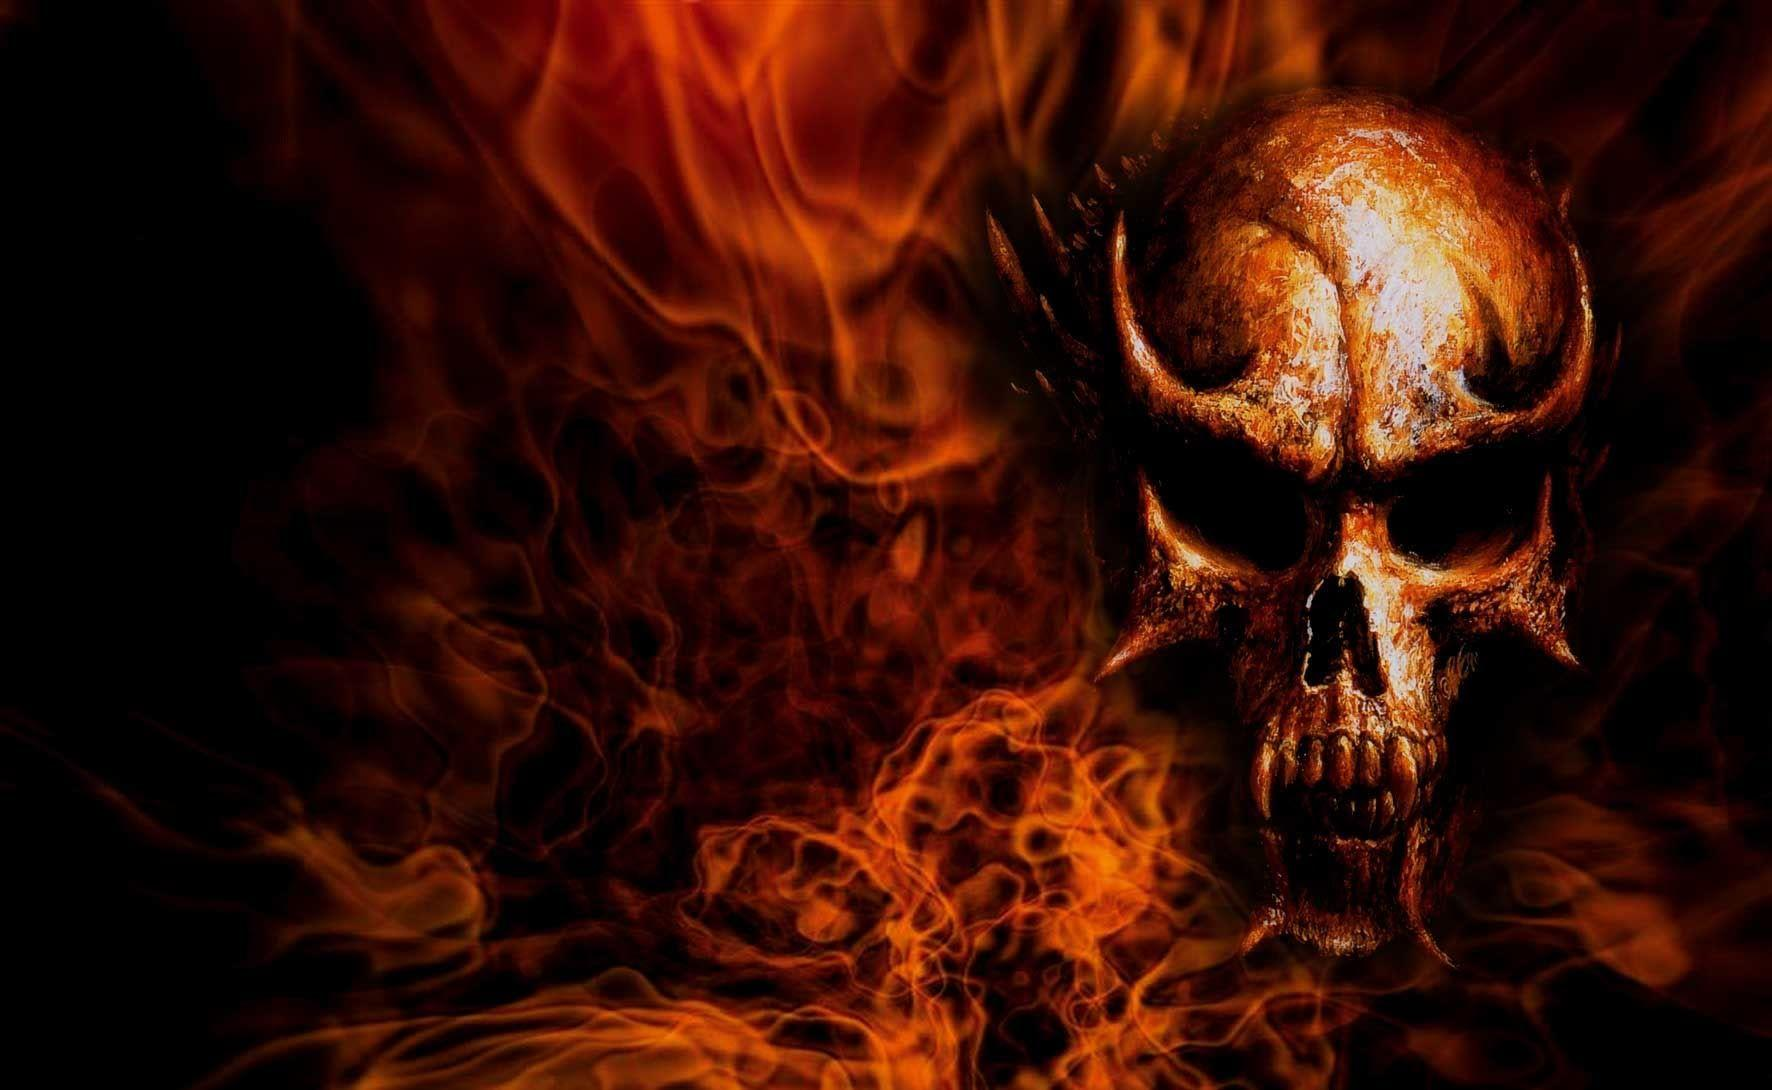 Red Flaming Skull Wallpapers